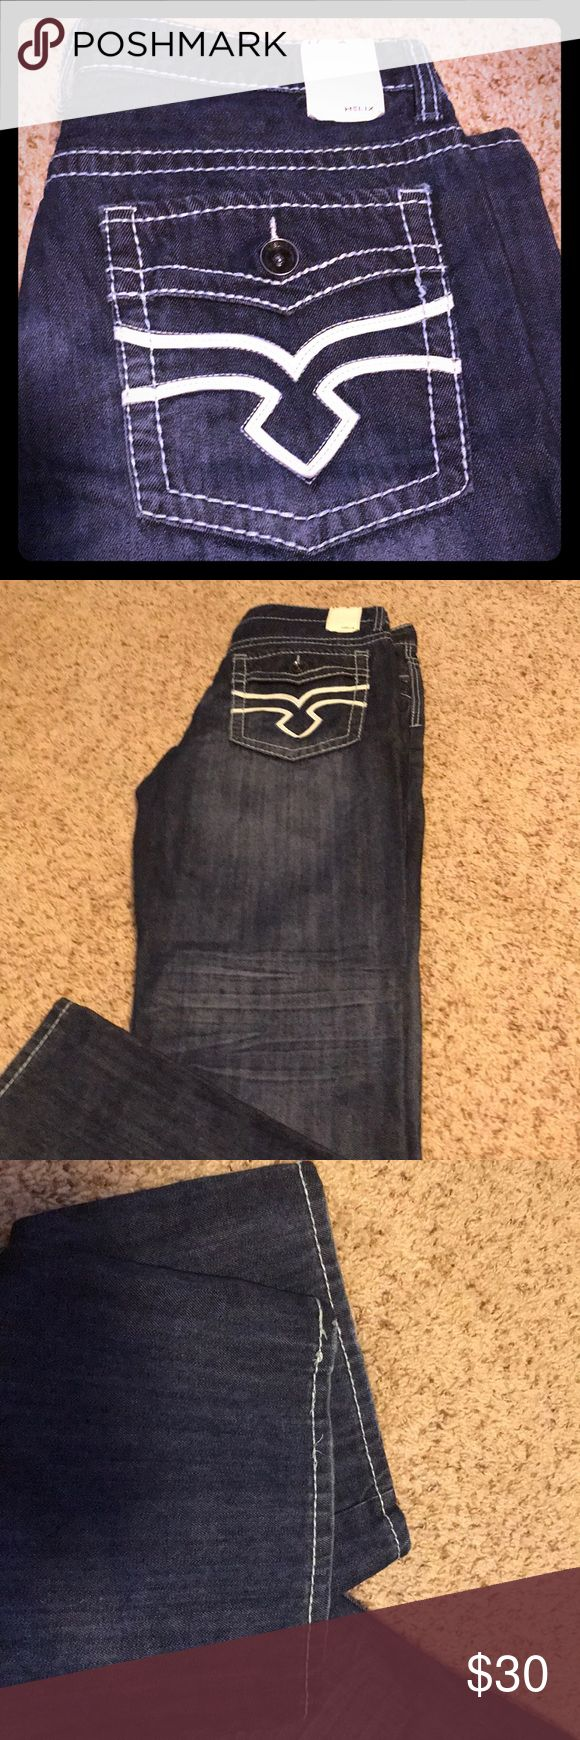 Helix Bootcut Jeans Excellent condition men's jeans. These were rarely worn as they did not fit for long. 34x32 helix Jeans Bootcut #mensjeansbootcut